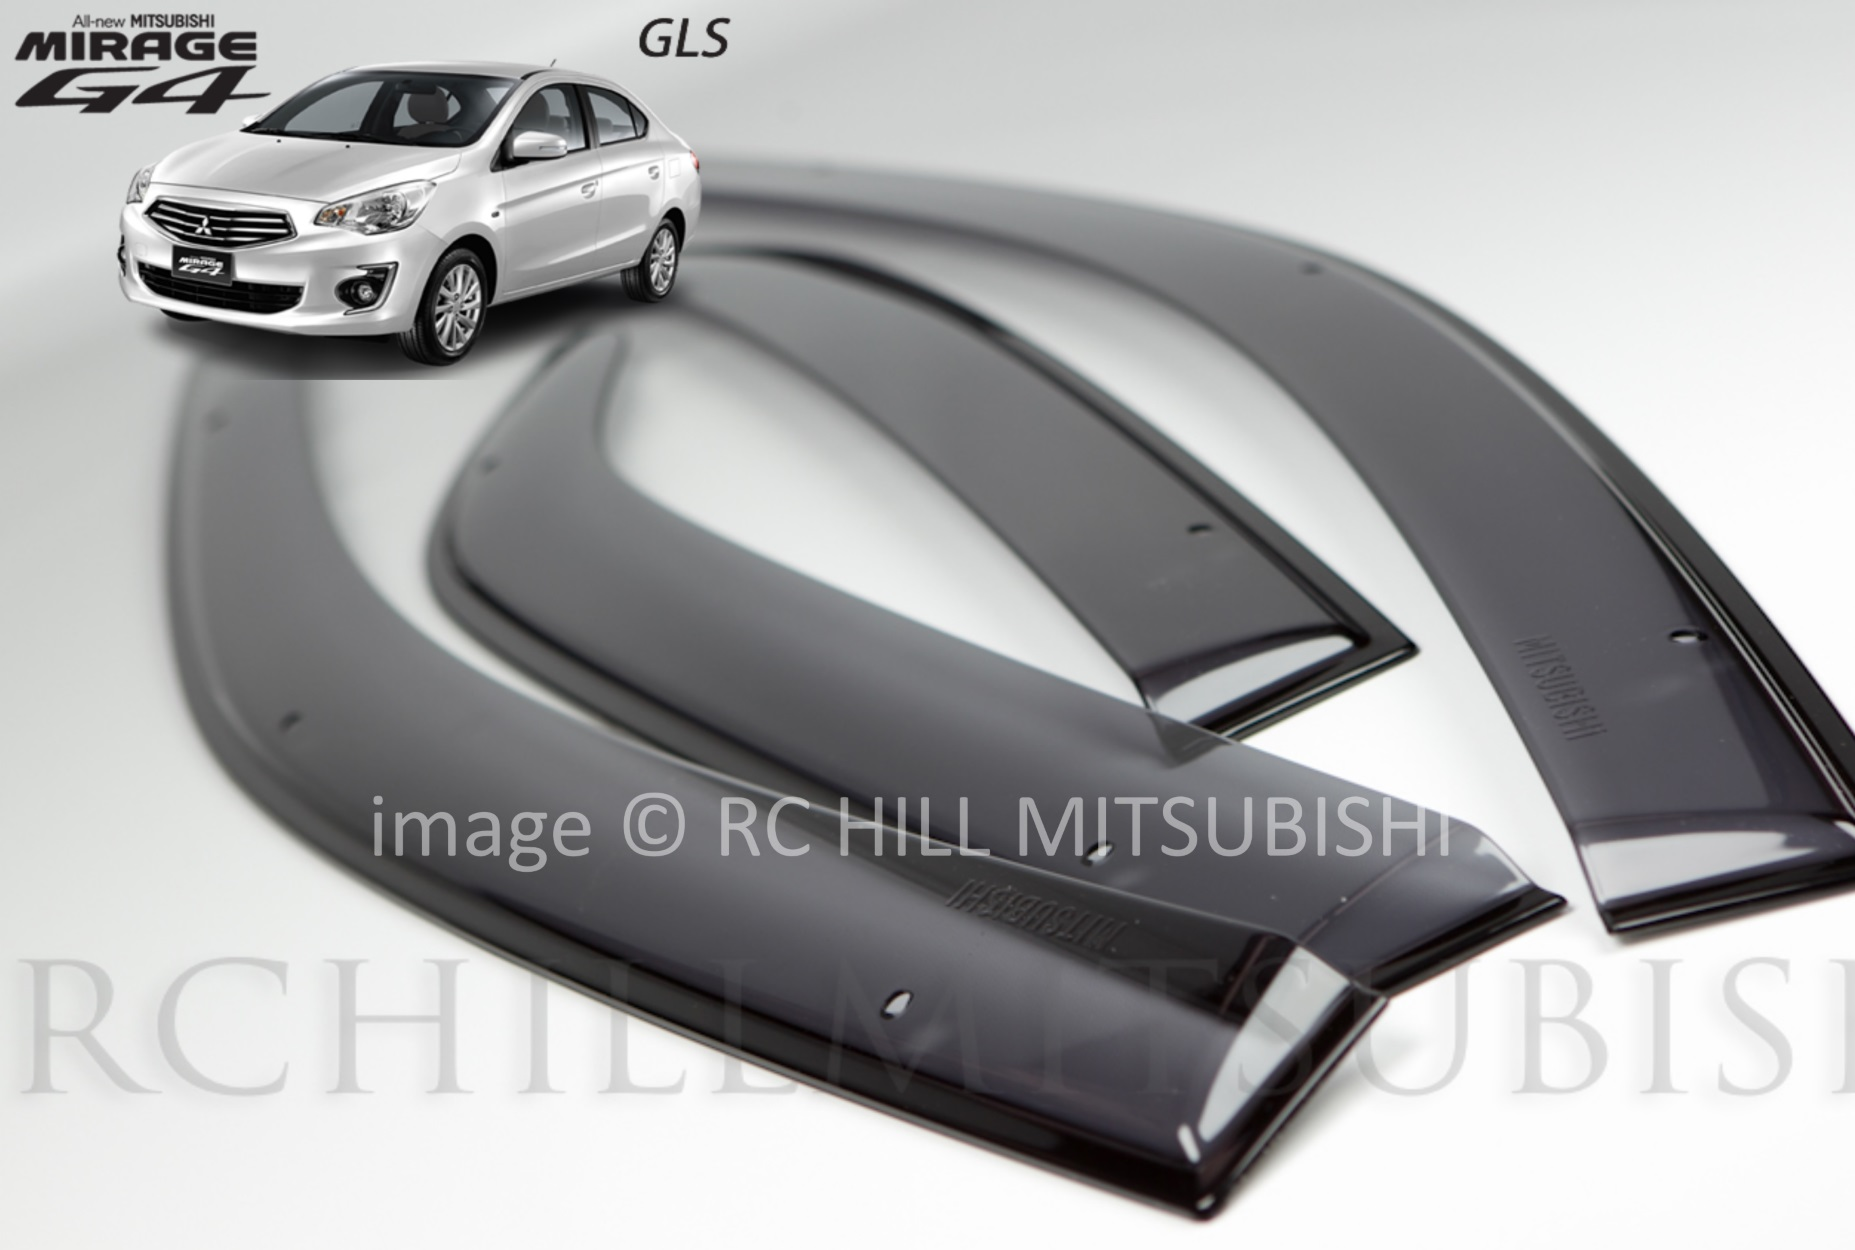 FREE SHIPPING Genuine Mitsubishi Mirage G4 Sedan Side Window Deflectors